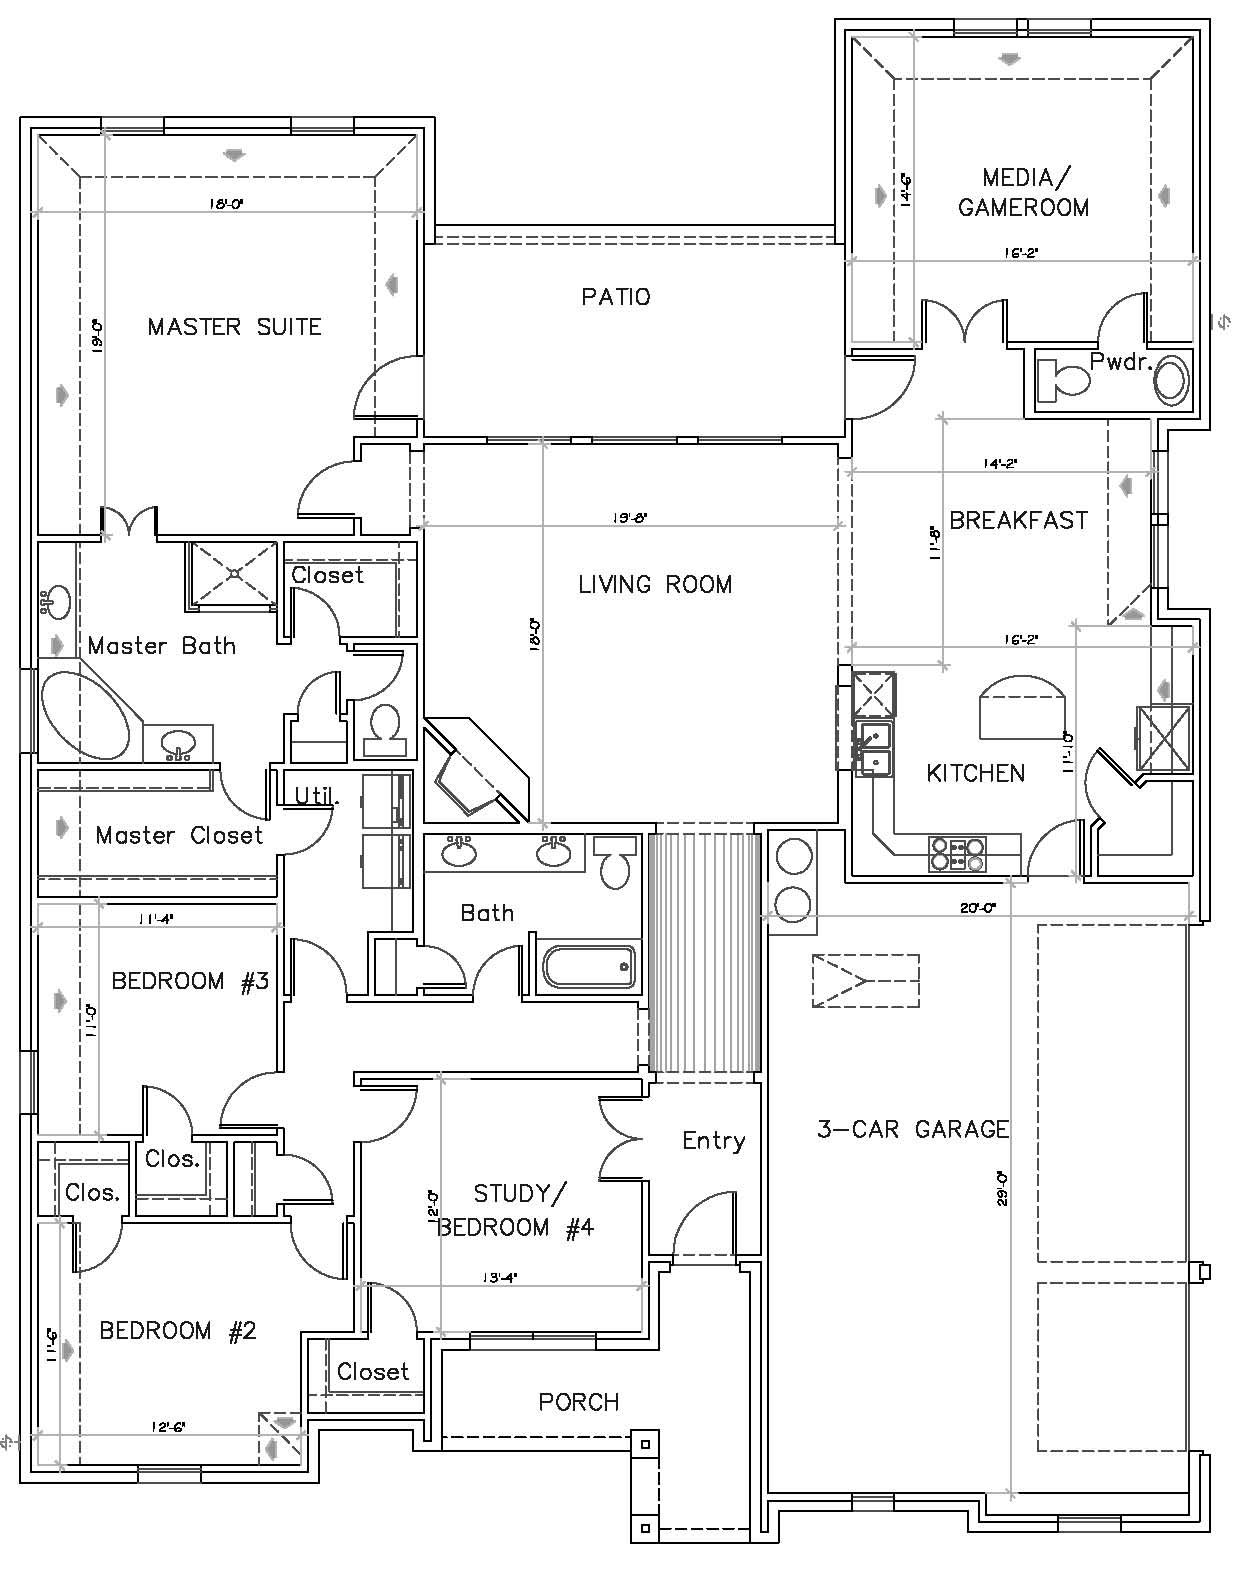 Southfork ranch house plans google search southfork for Southfork ranch house floor plan